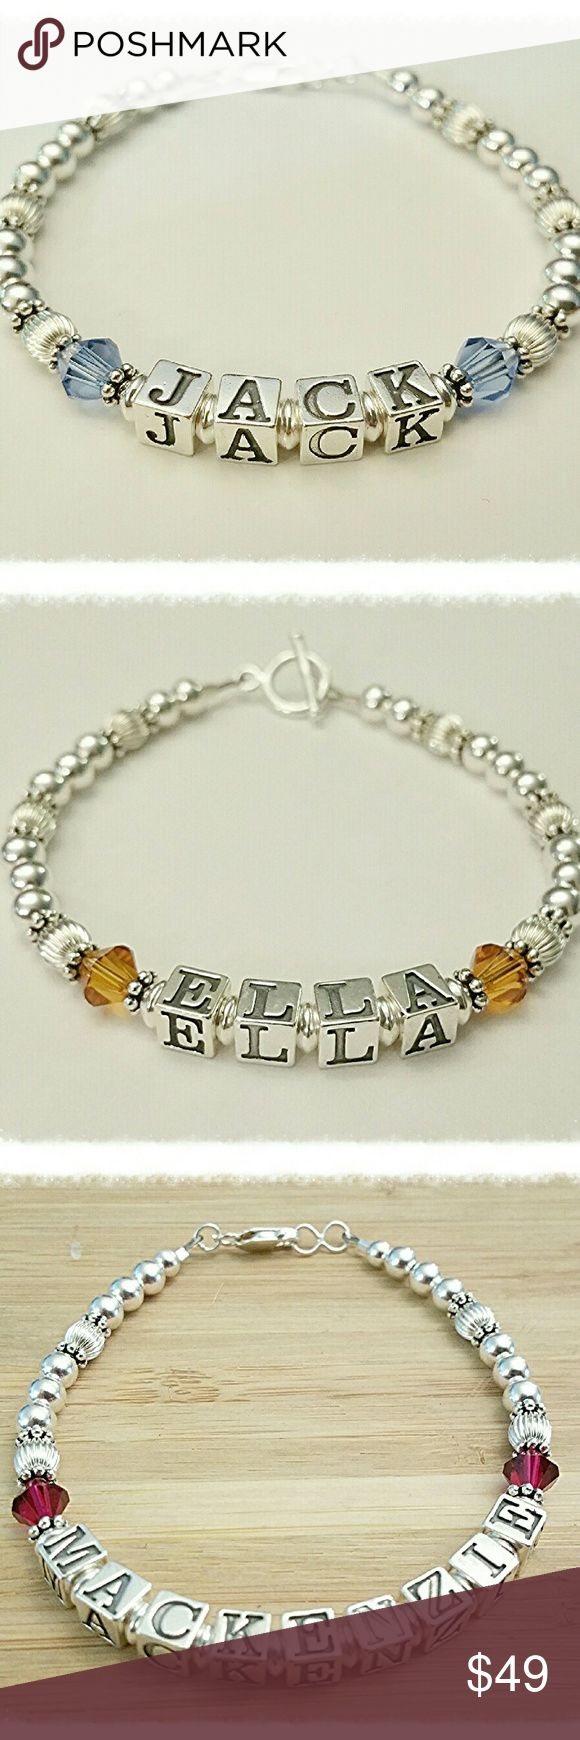 Sterling Silver Beaded Name Bracelet Personalized Sterling Silver Beaded Name Bracelet  Personalize your bracelet with any Name one a single strand beaded bracelet.  Sterling Silver Letter Block Beads, spacer beads & clasp. Swarovski Crystal Birthstone Beads - see picture for available color choices.  Up to 8 Letter Beads are included in this bracelet. Jewelry Bracelets